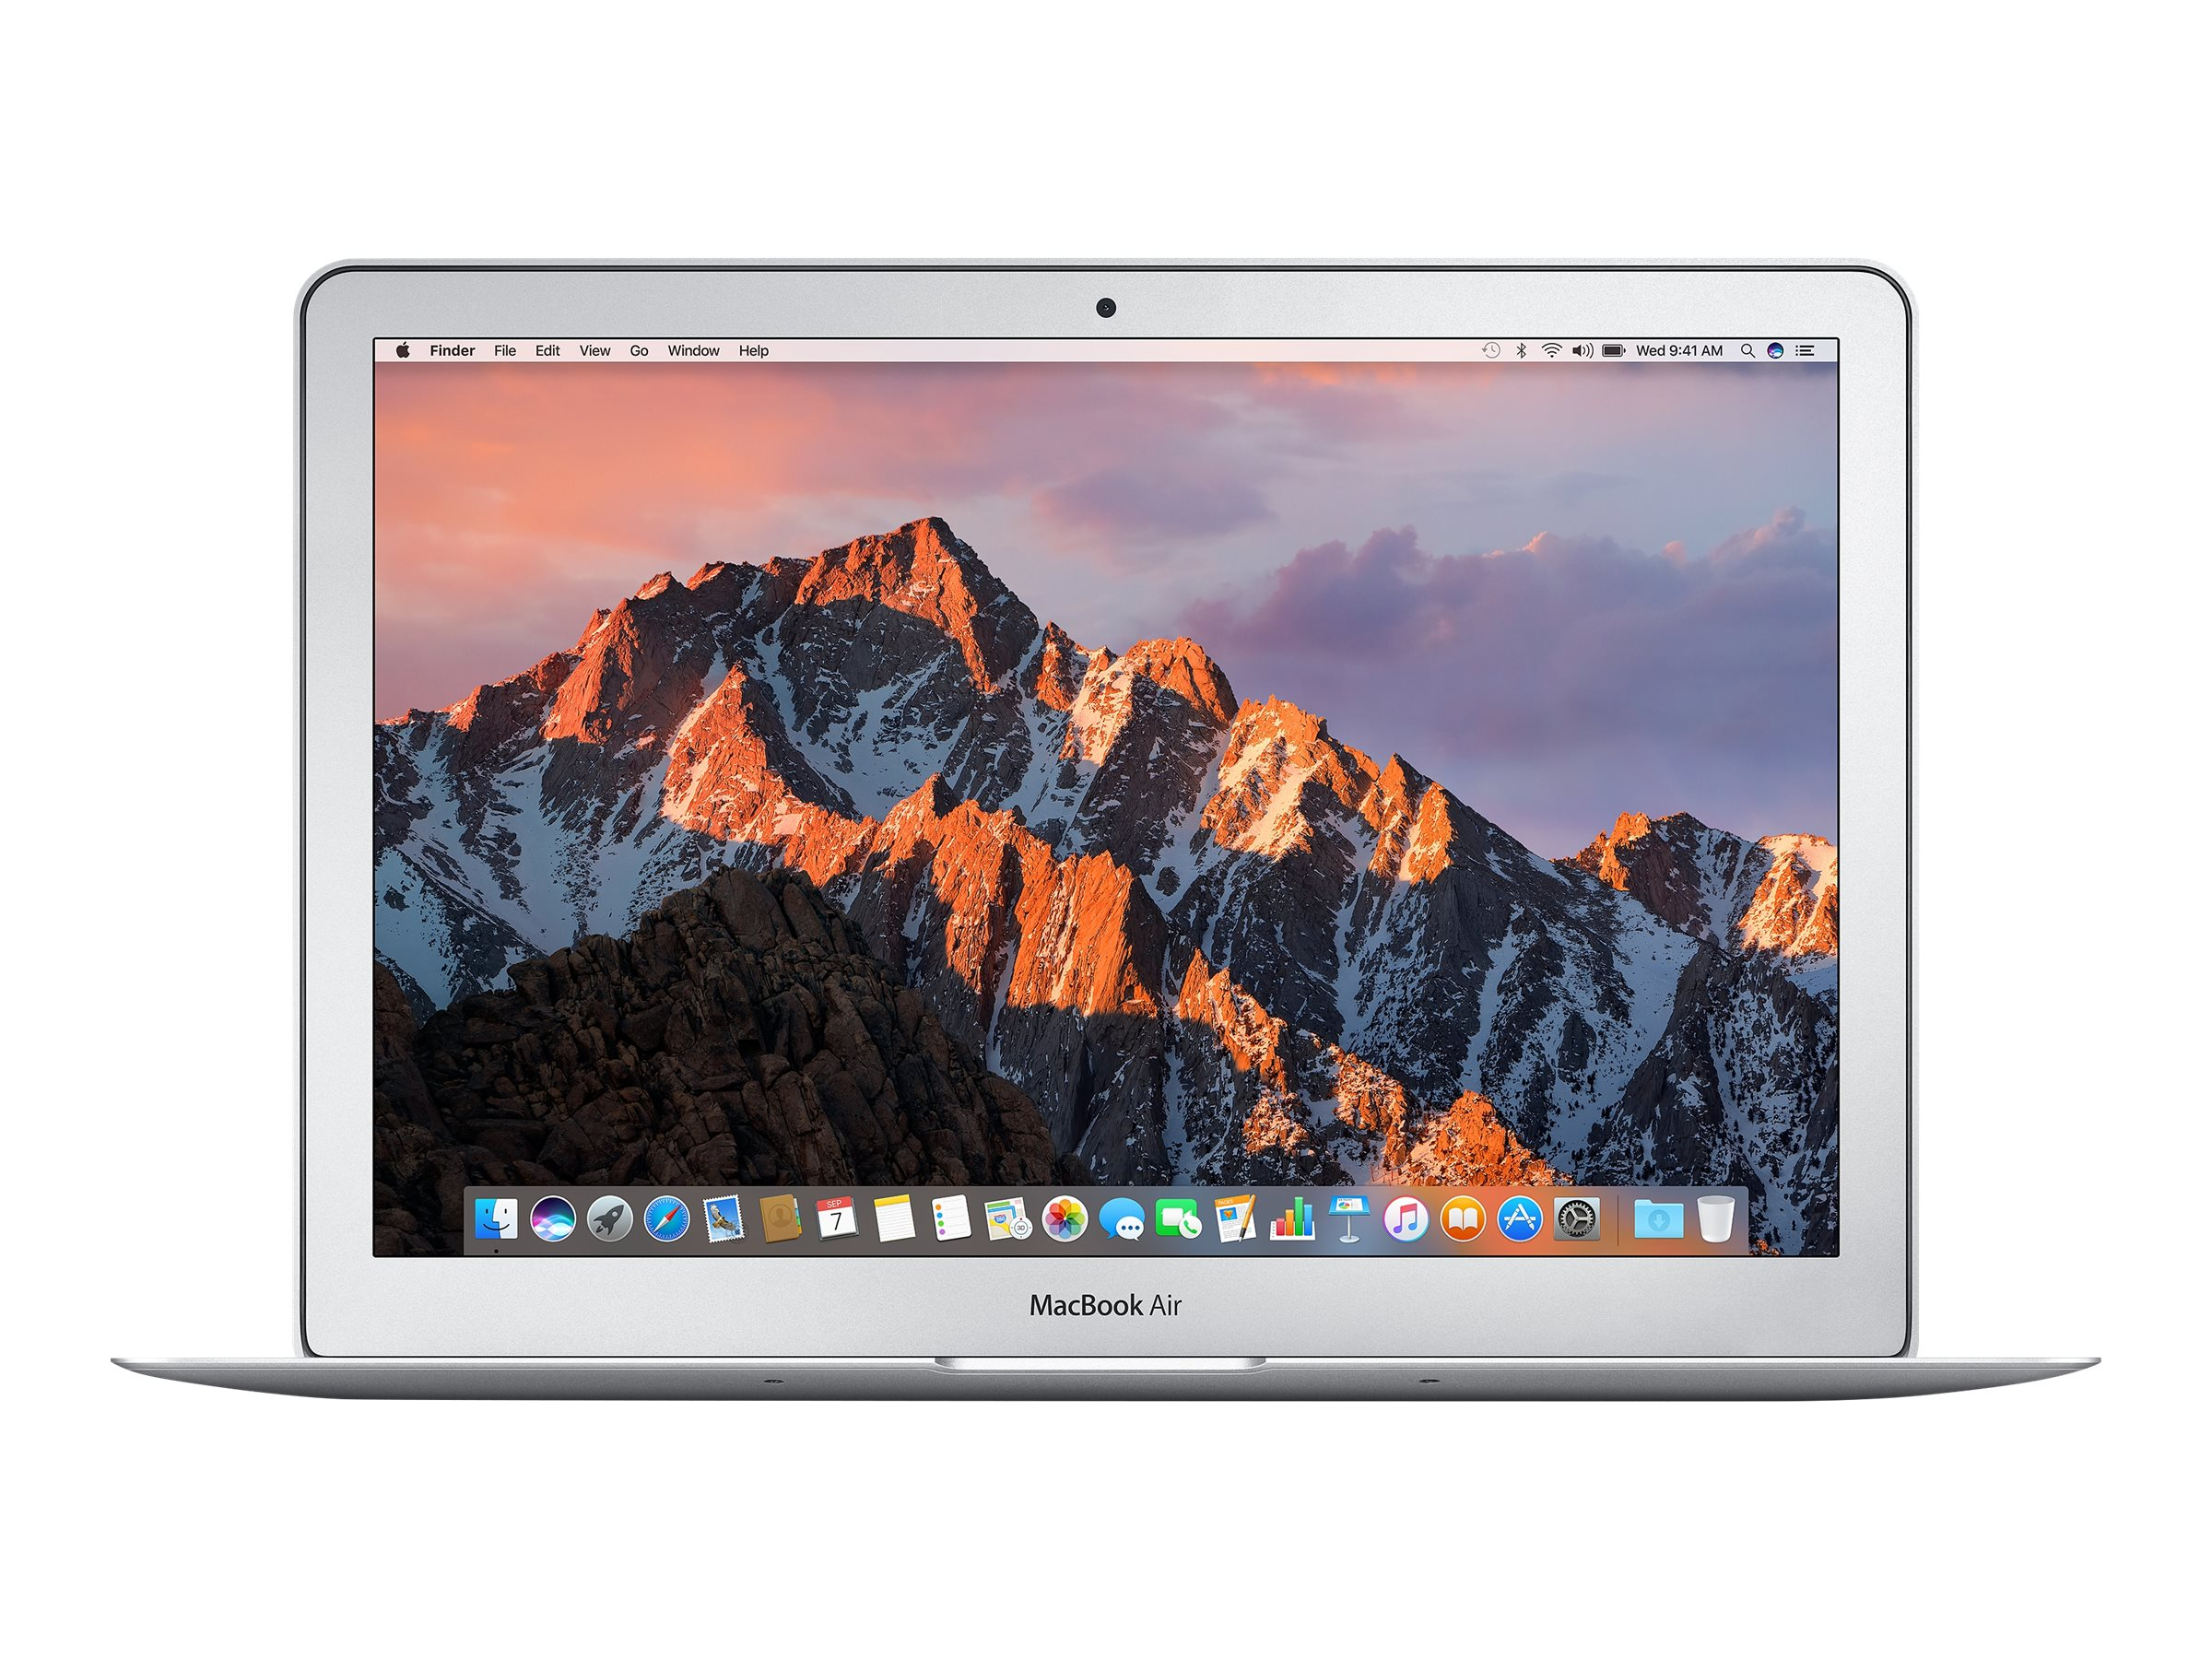 Apple MacBook Air 13 1.8GHz Core i5 8GB 128GB PCIe SSD HD 6000, MQD32LL/A, 34179192, Notebooks - MacBook Air